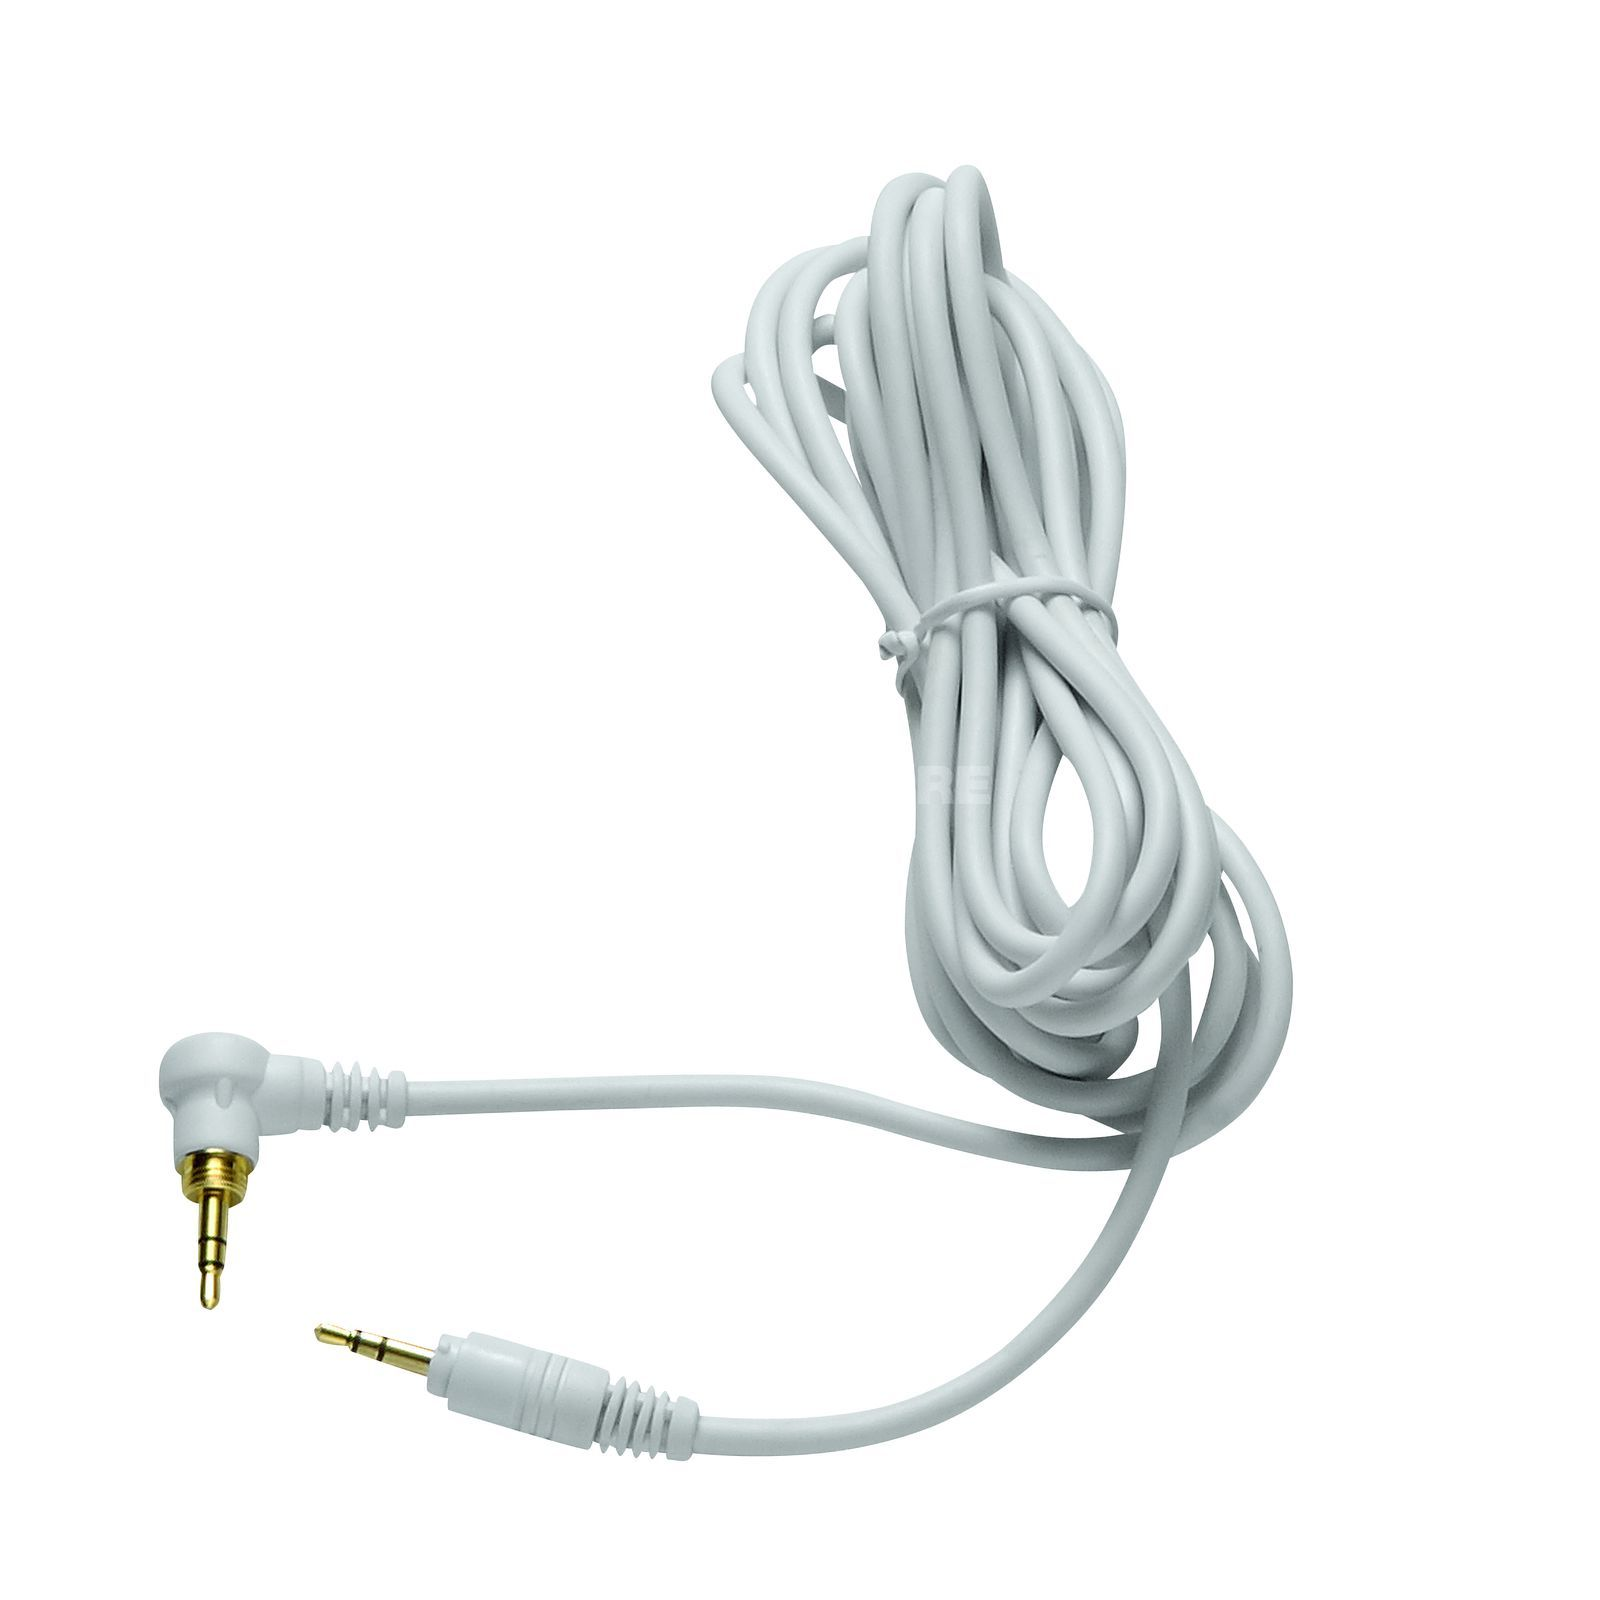 Reloop Replacement Cable for RHP-10/RH-3500 Standard white Product Image